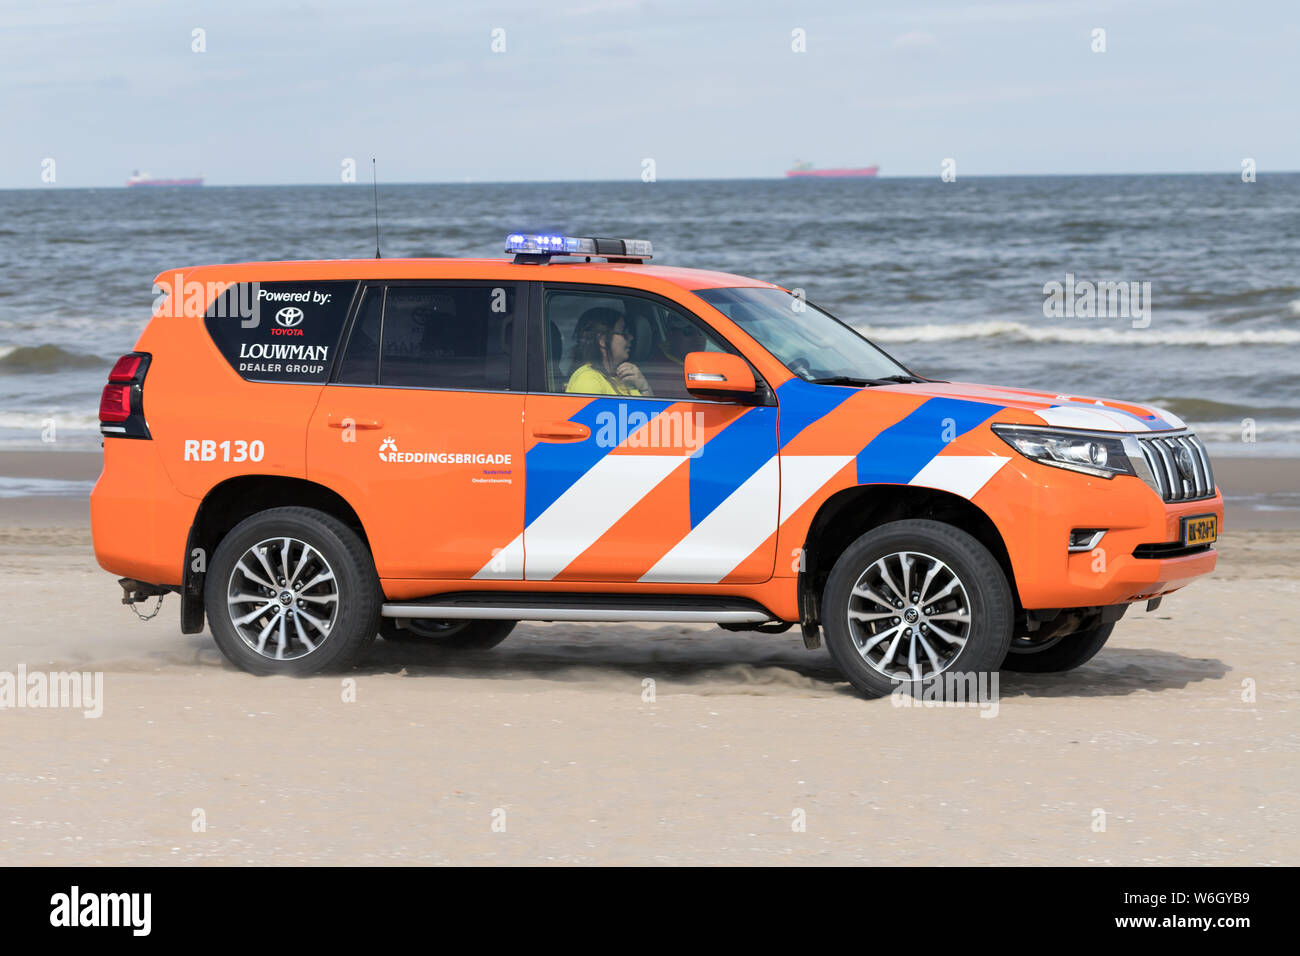 Dutch lifeguard Toyota Land Cruiser with active blue emergency lighting on the beach Stock Photo